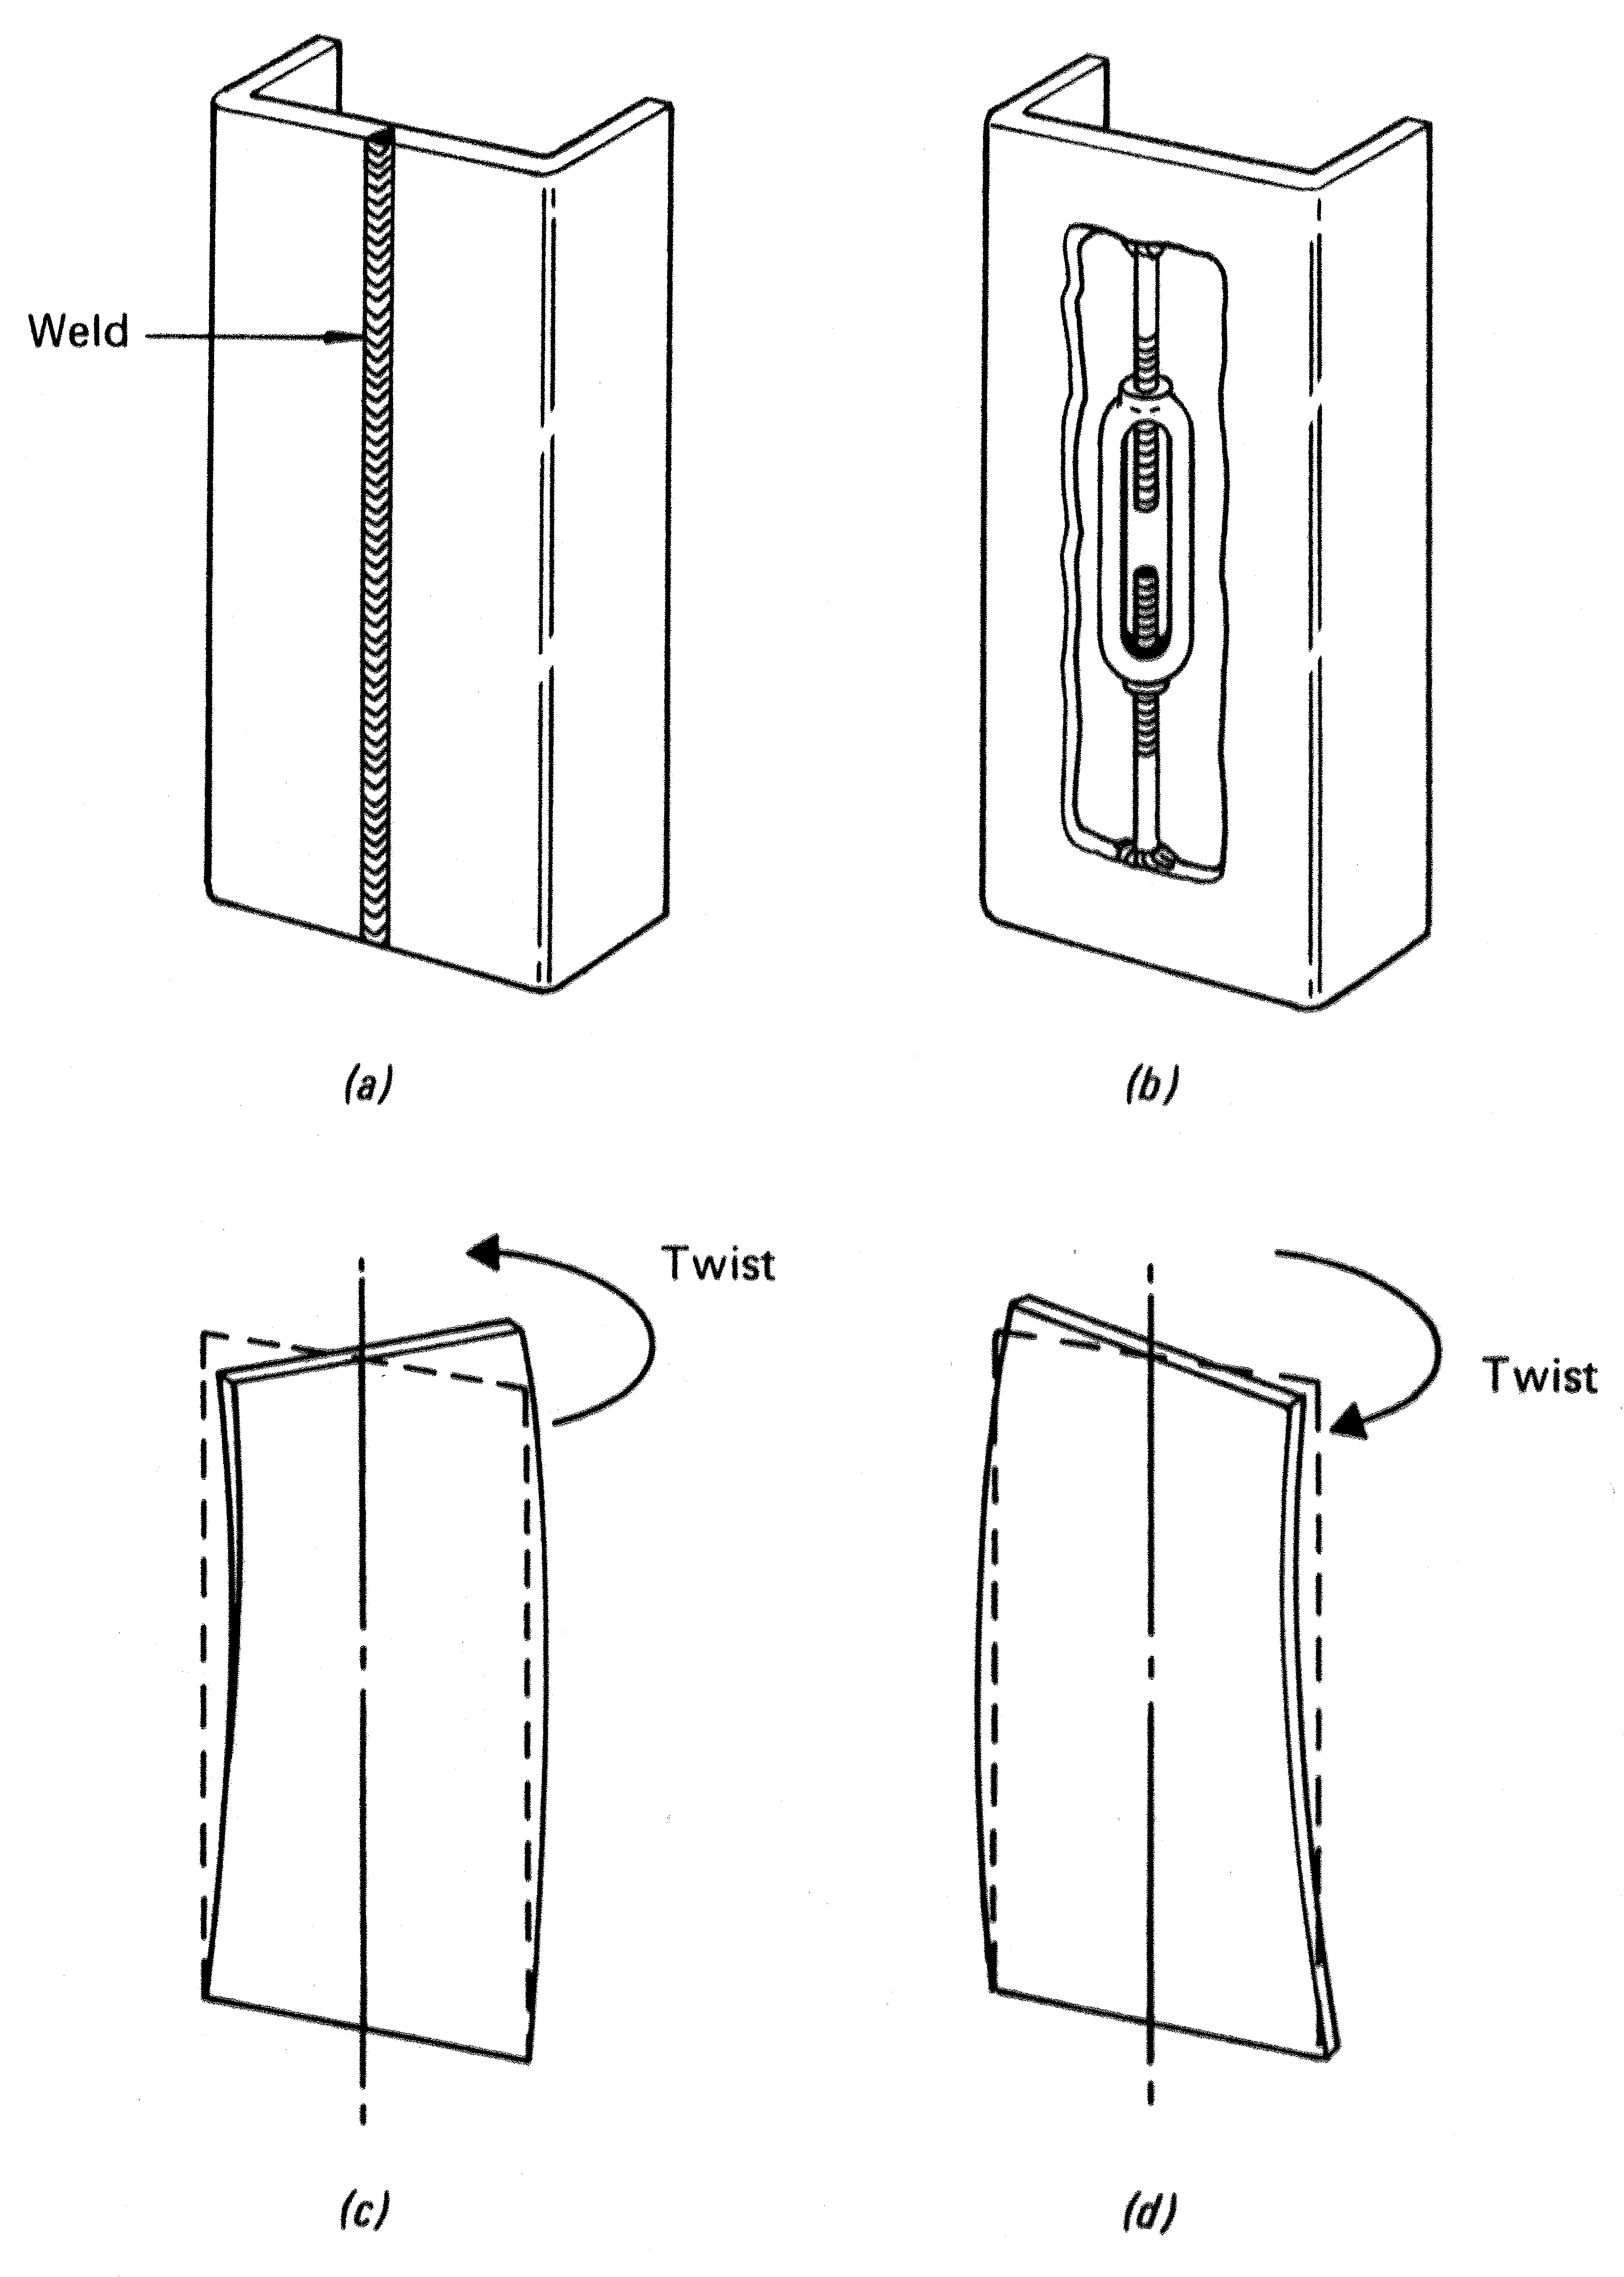 Figure 3. When the weld shrinks along its length, it causes base metal to twist around the weld.(Click on drawing to enlarge it)